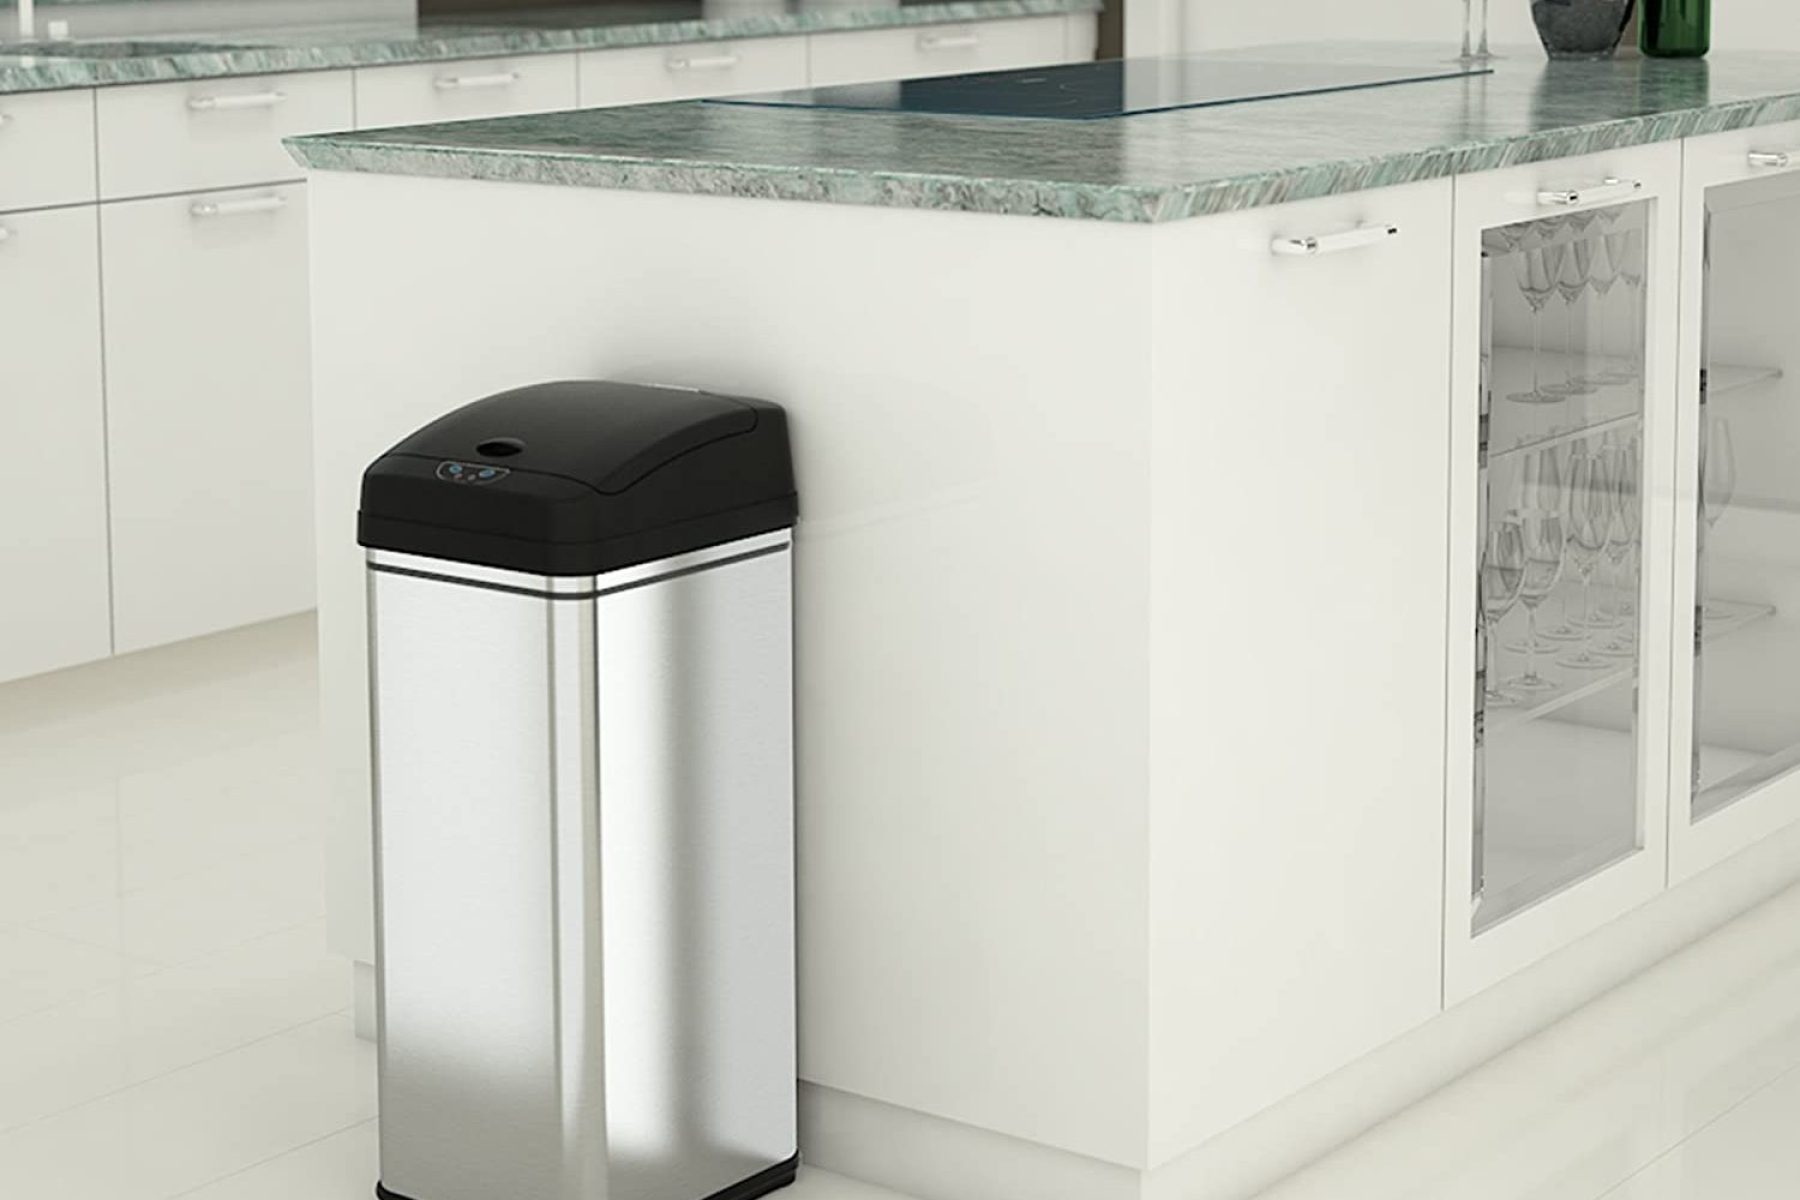 Best Touchless Trash Can Cdc Recommended Garbage Can Covid Prevention Rolling Stone